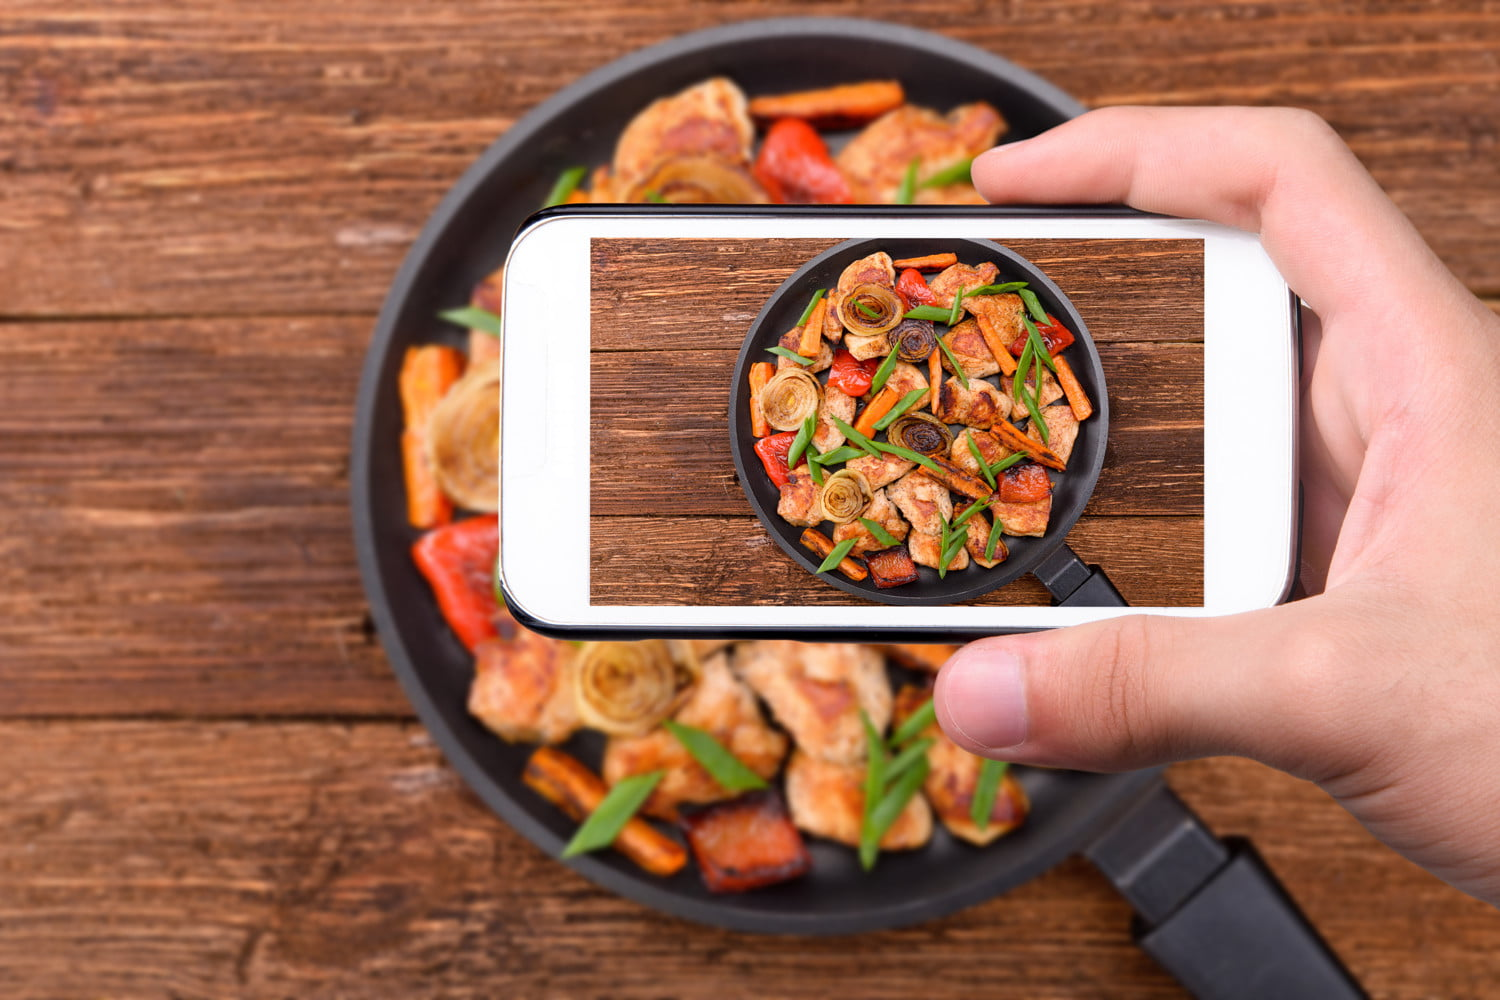 Mits pic2recipe ai can predict food ingredients by analyzing a mits pic2recipe ai can predict food ingredients by analyzing a photo digital trends forumfinder Images